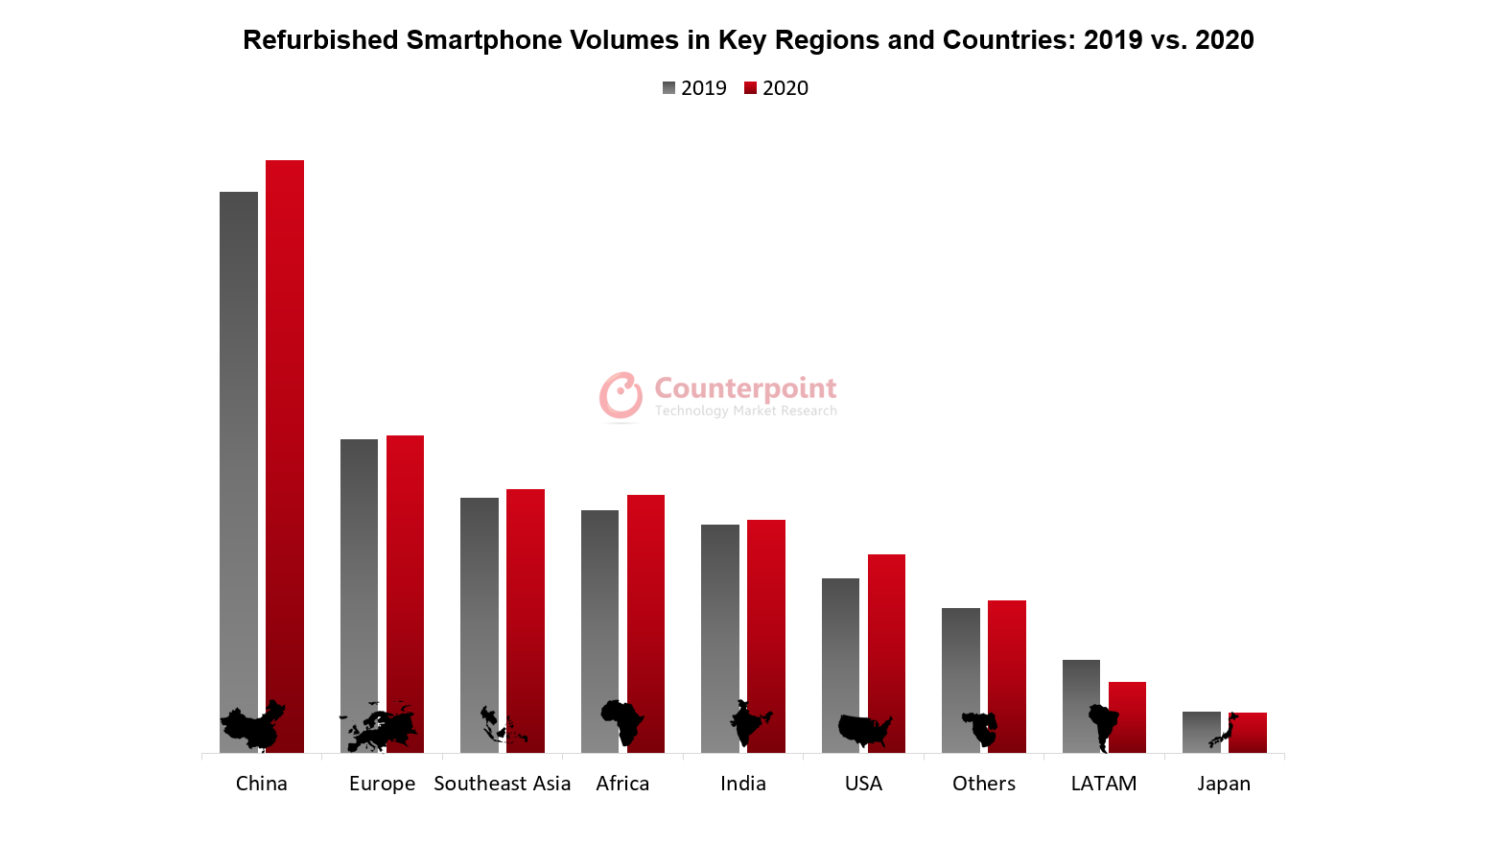 Counterpoint Research Refurbished Smartphone Volumes in Key Regions and Countries: 2019 vs. 2020